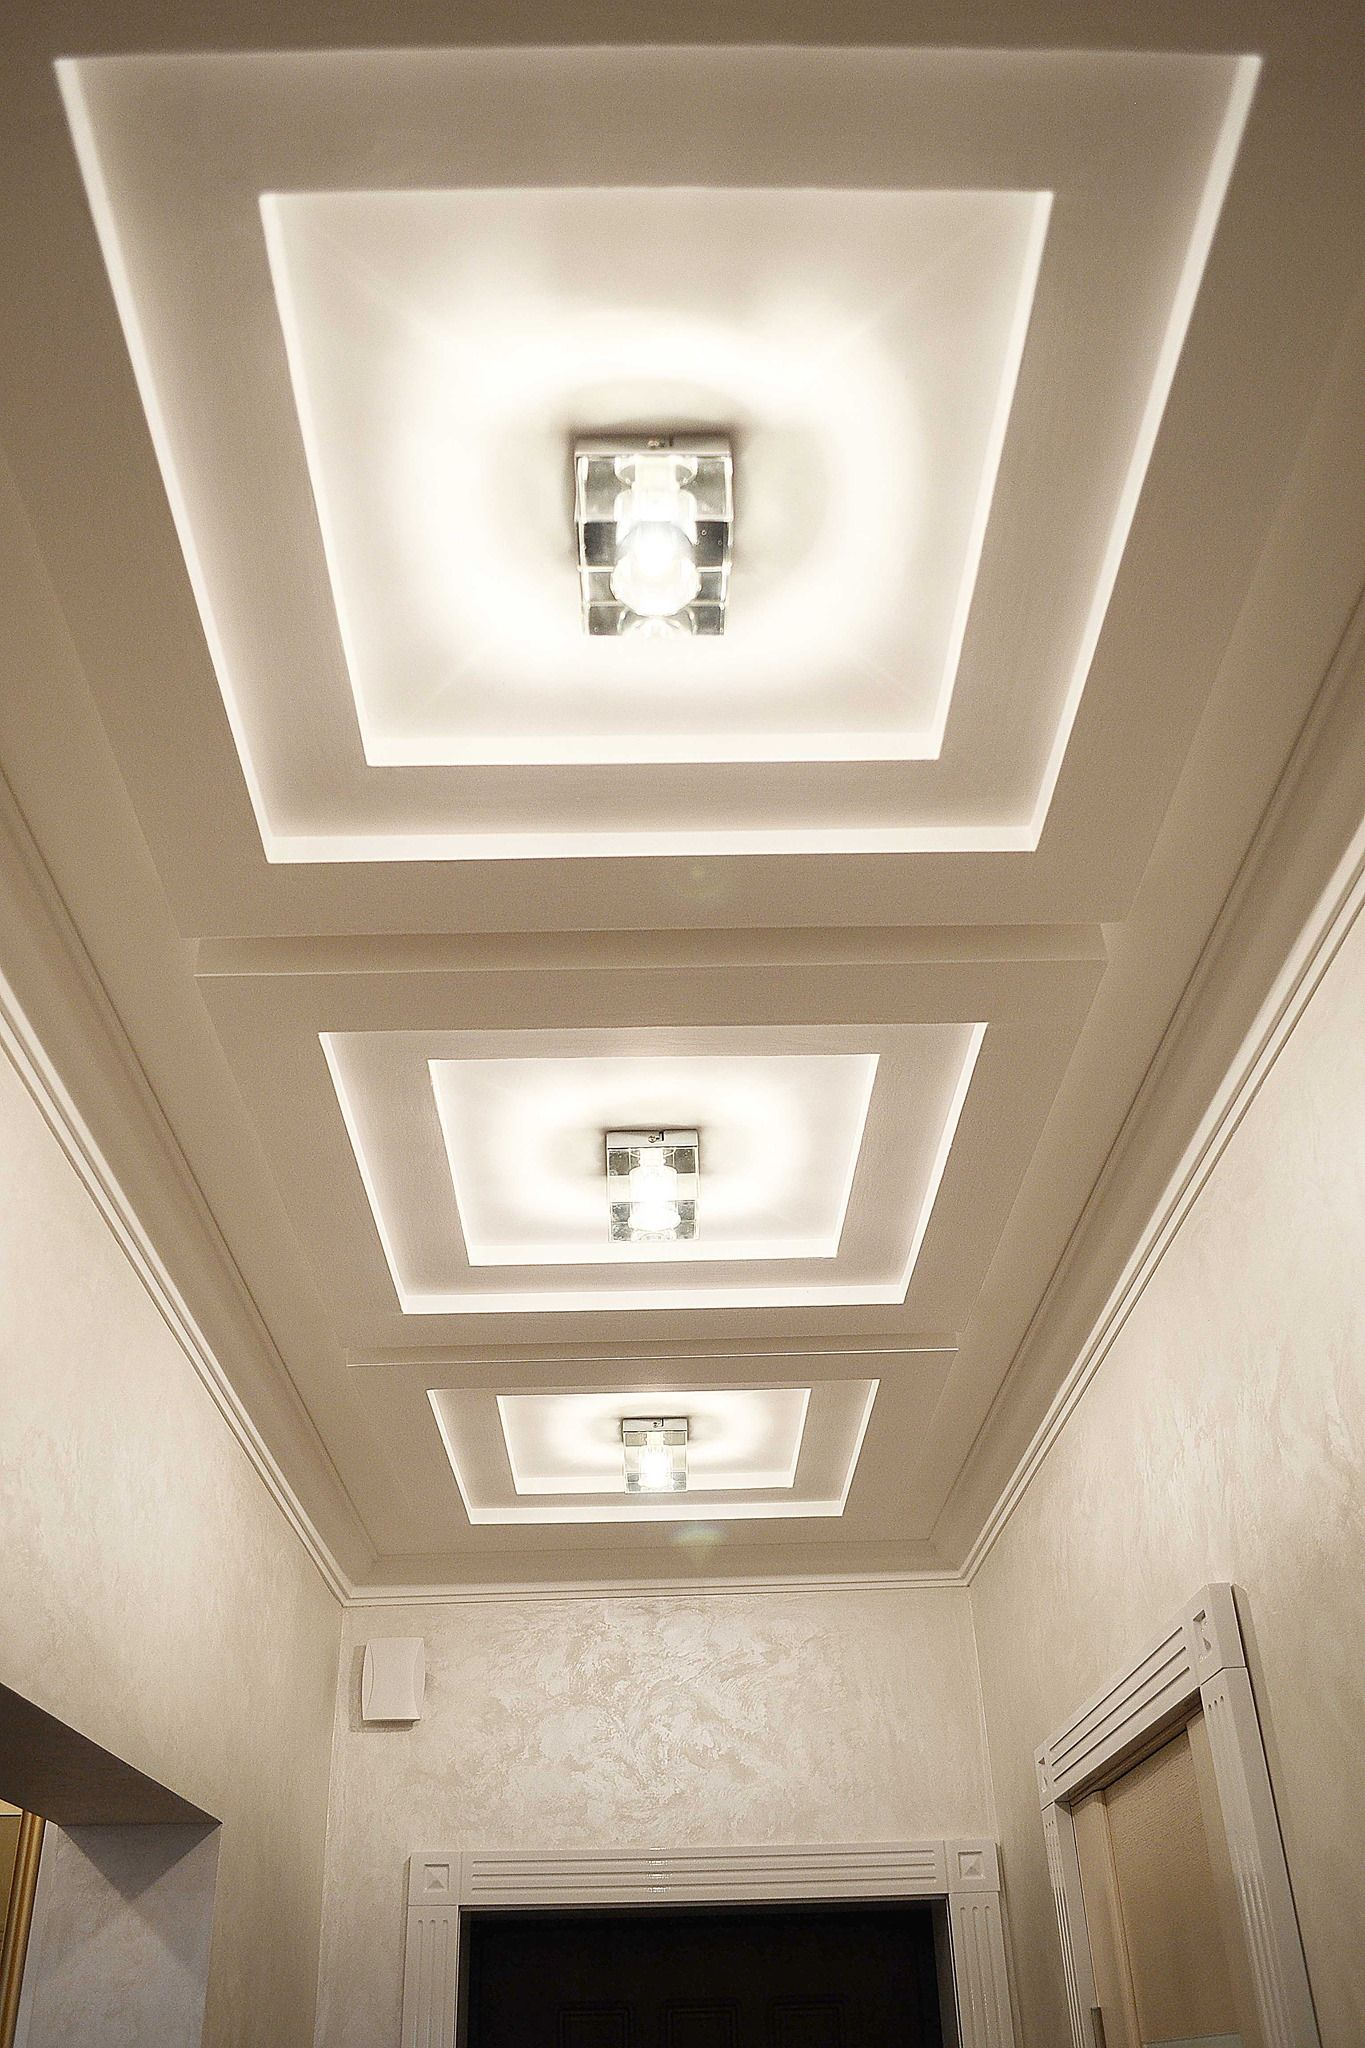 Roof ceiling | roof ceiling | Pinterest | Roof ceiling, Ceiling and ...